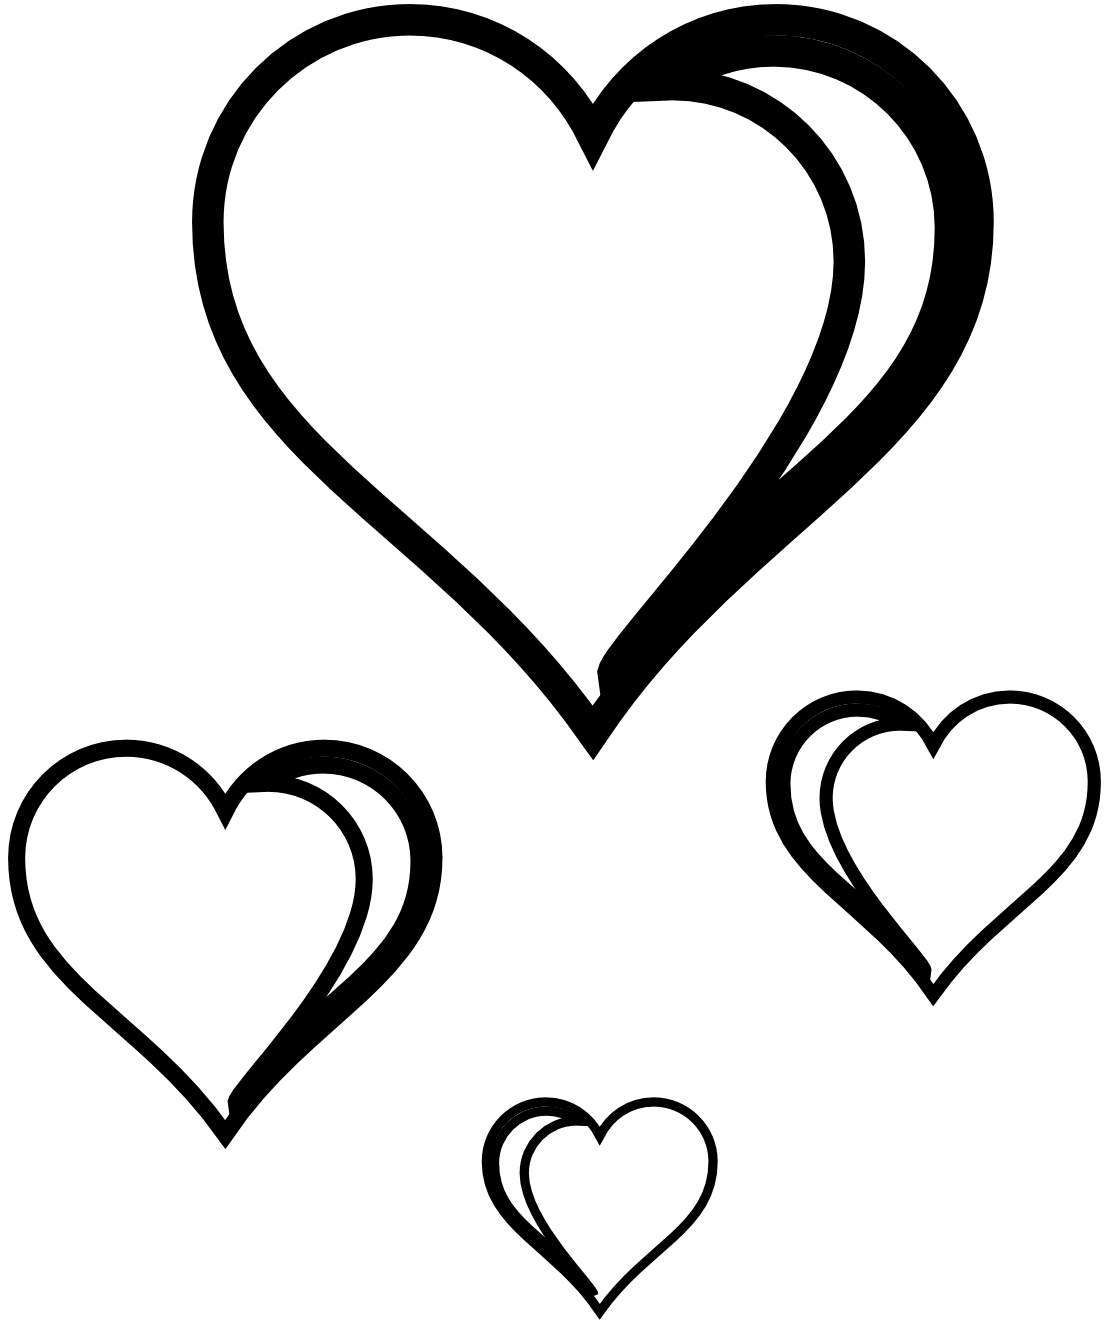 Line Art Love Heart : Heart cluster coloring book colouring sheet page black